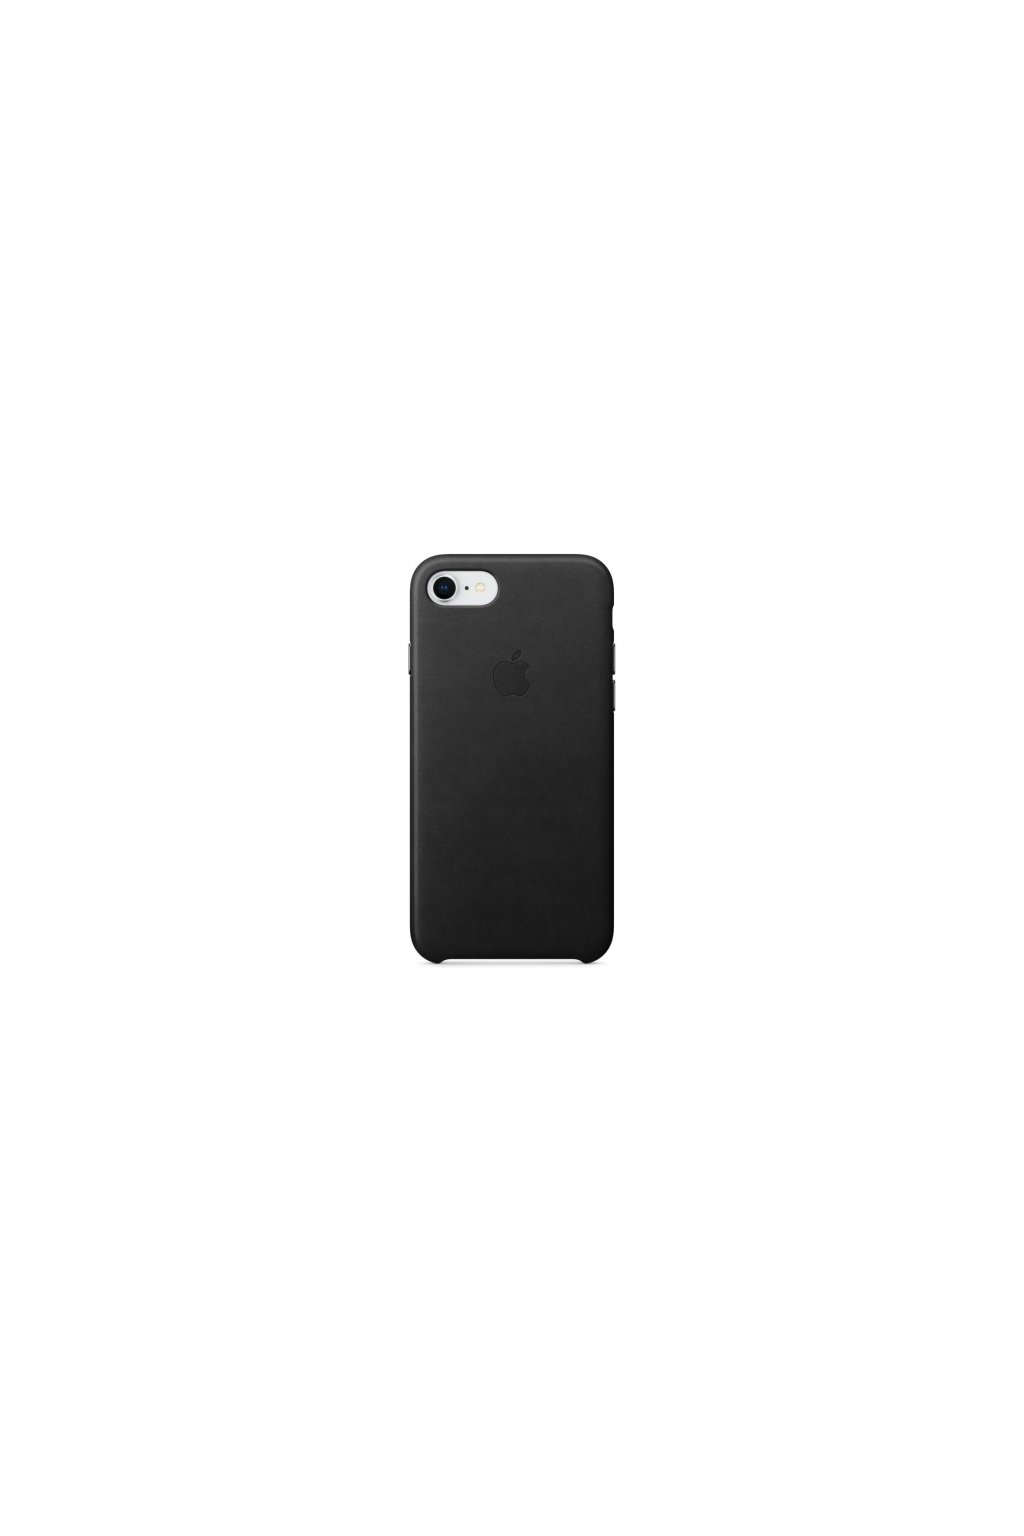 mqh92zm:a 8:7 Leather Case Black